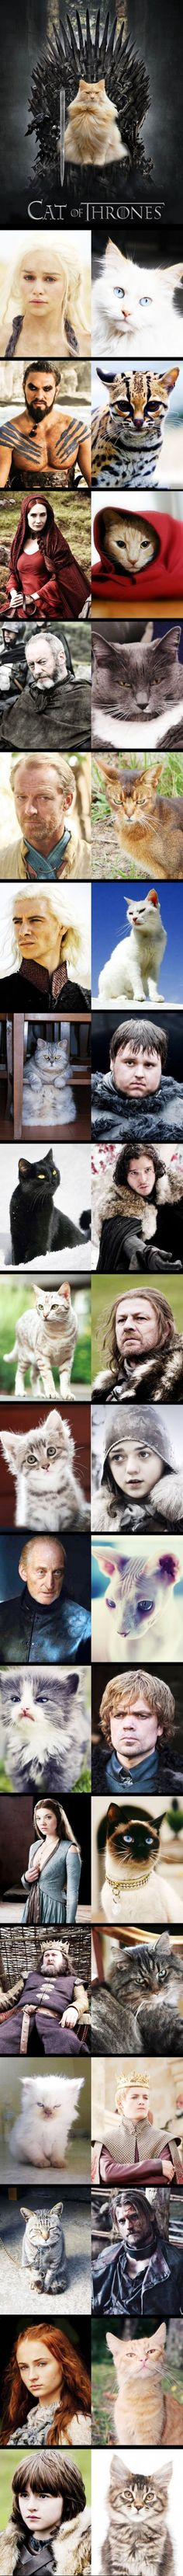 game of thrones funny humor